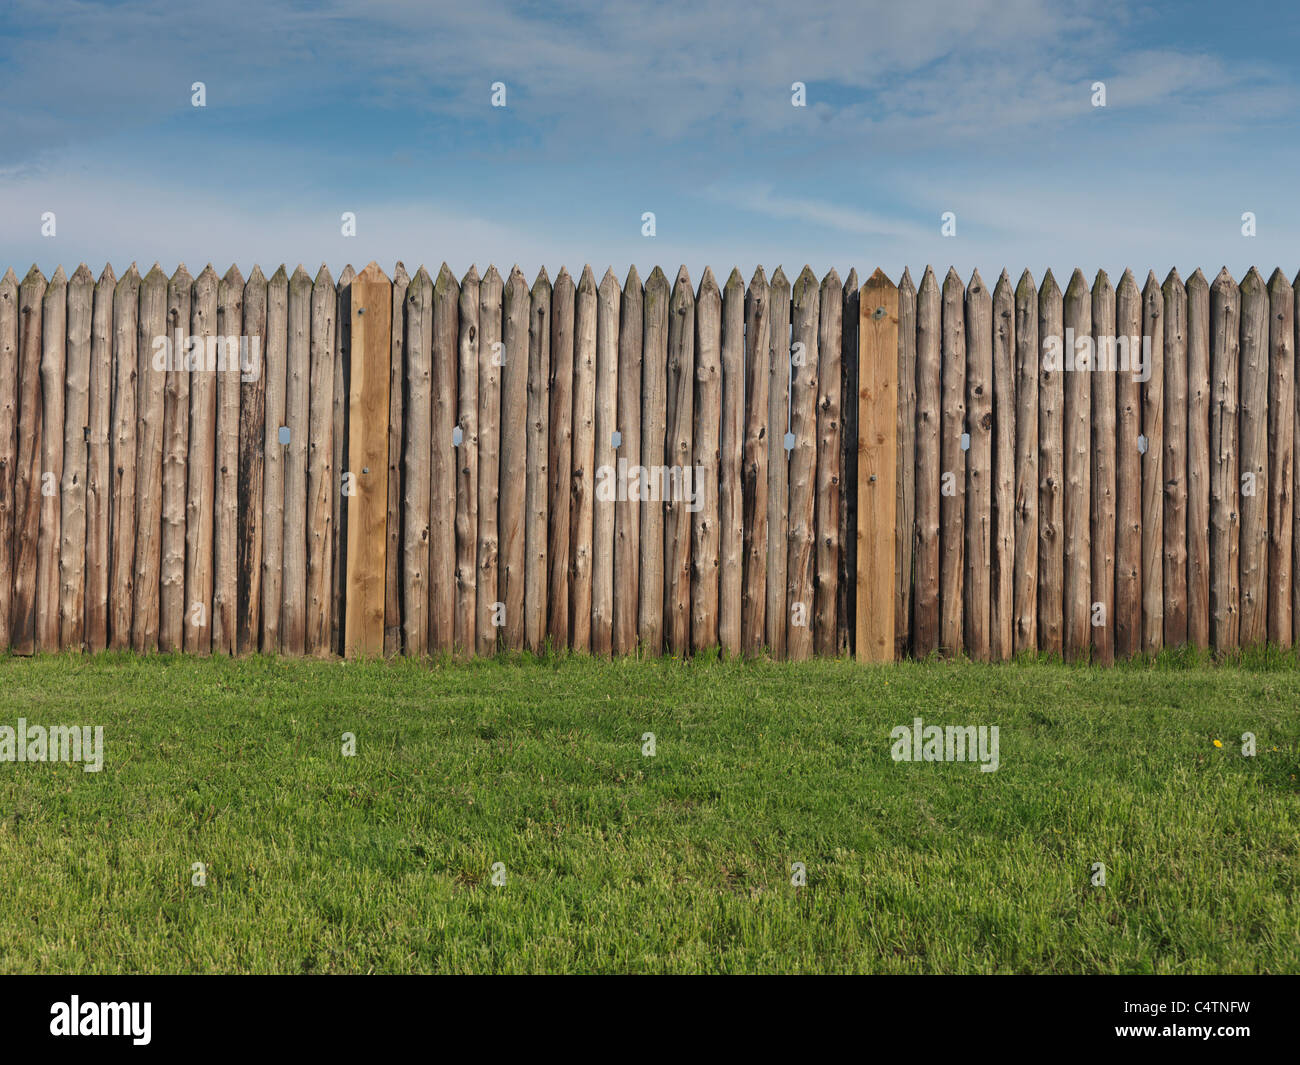 Palisade wall of a fort - Stock Image